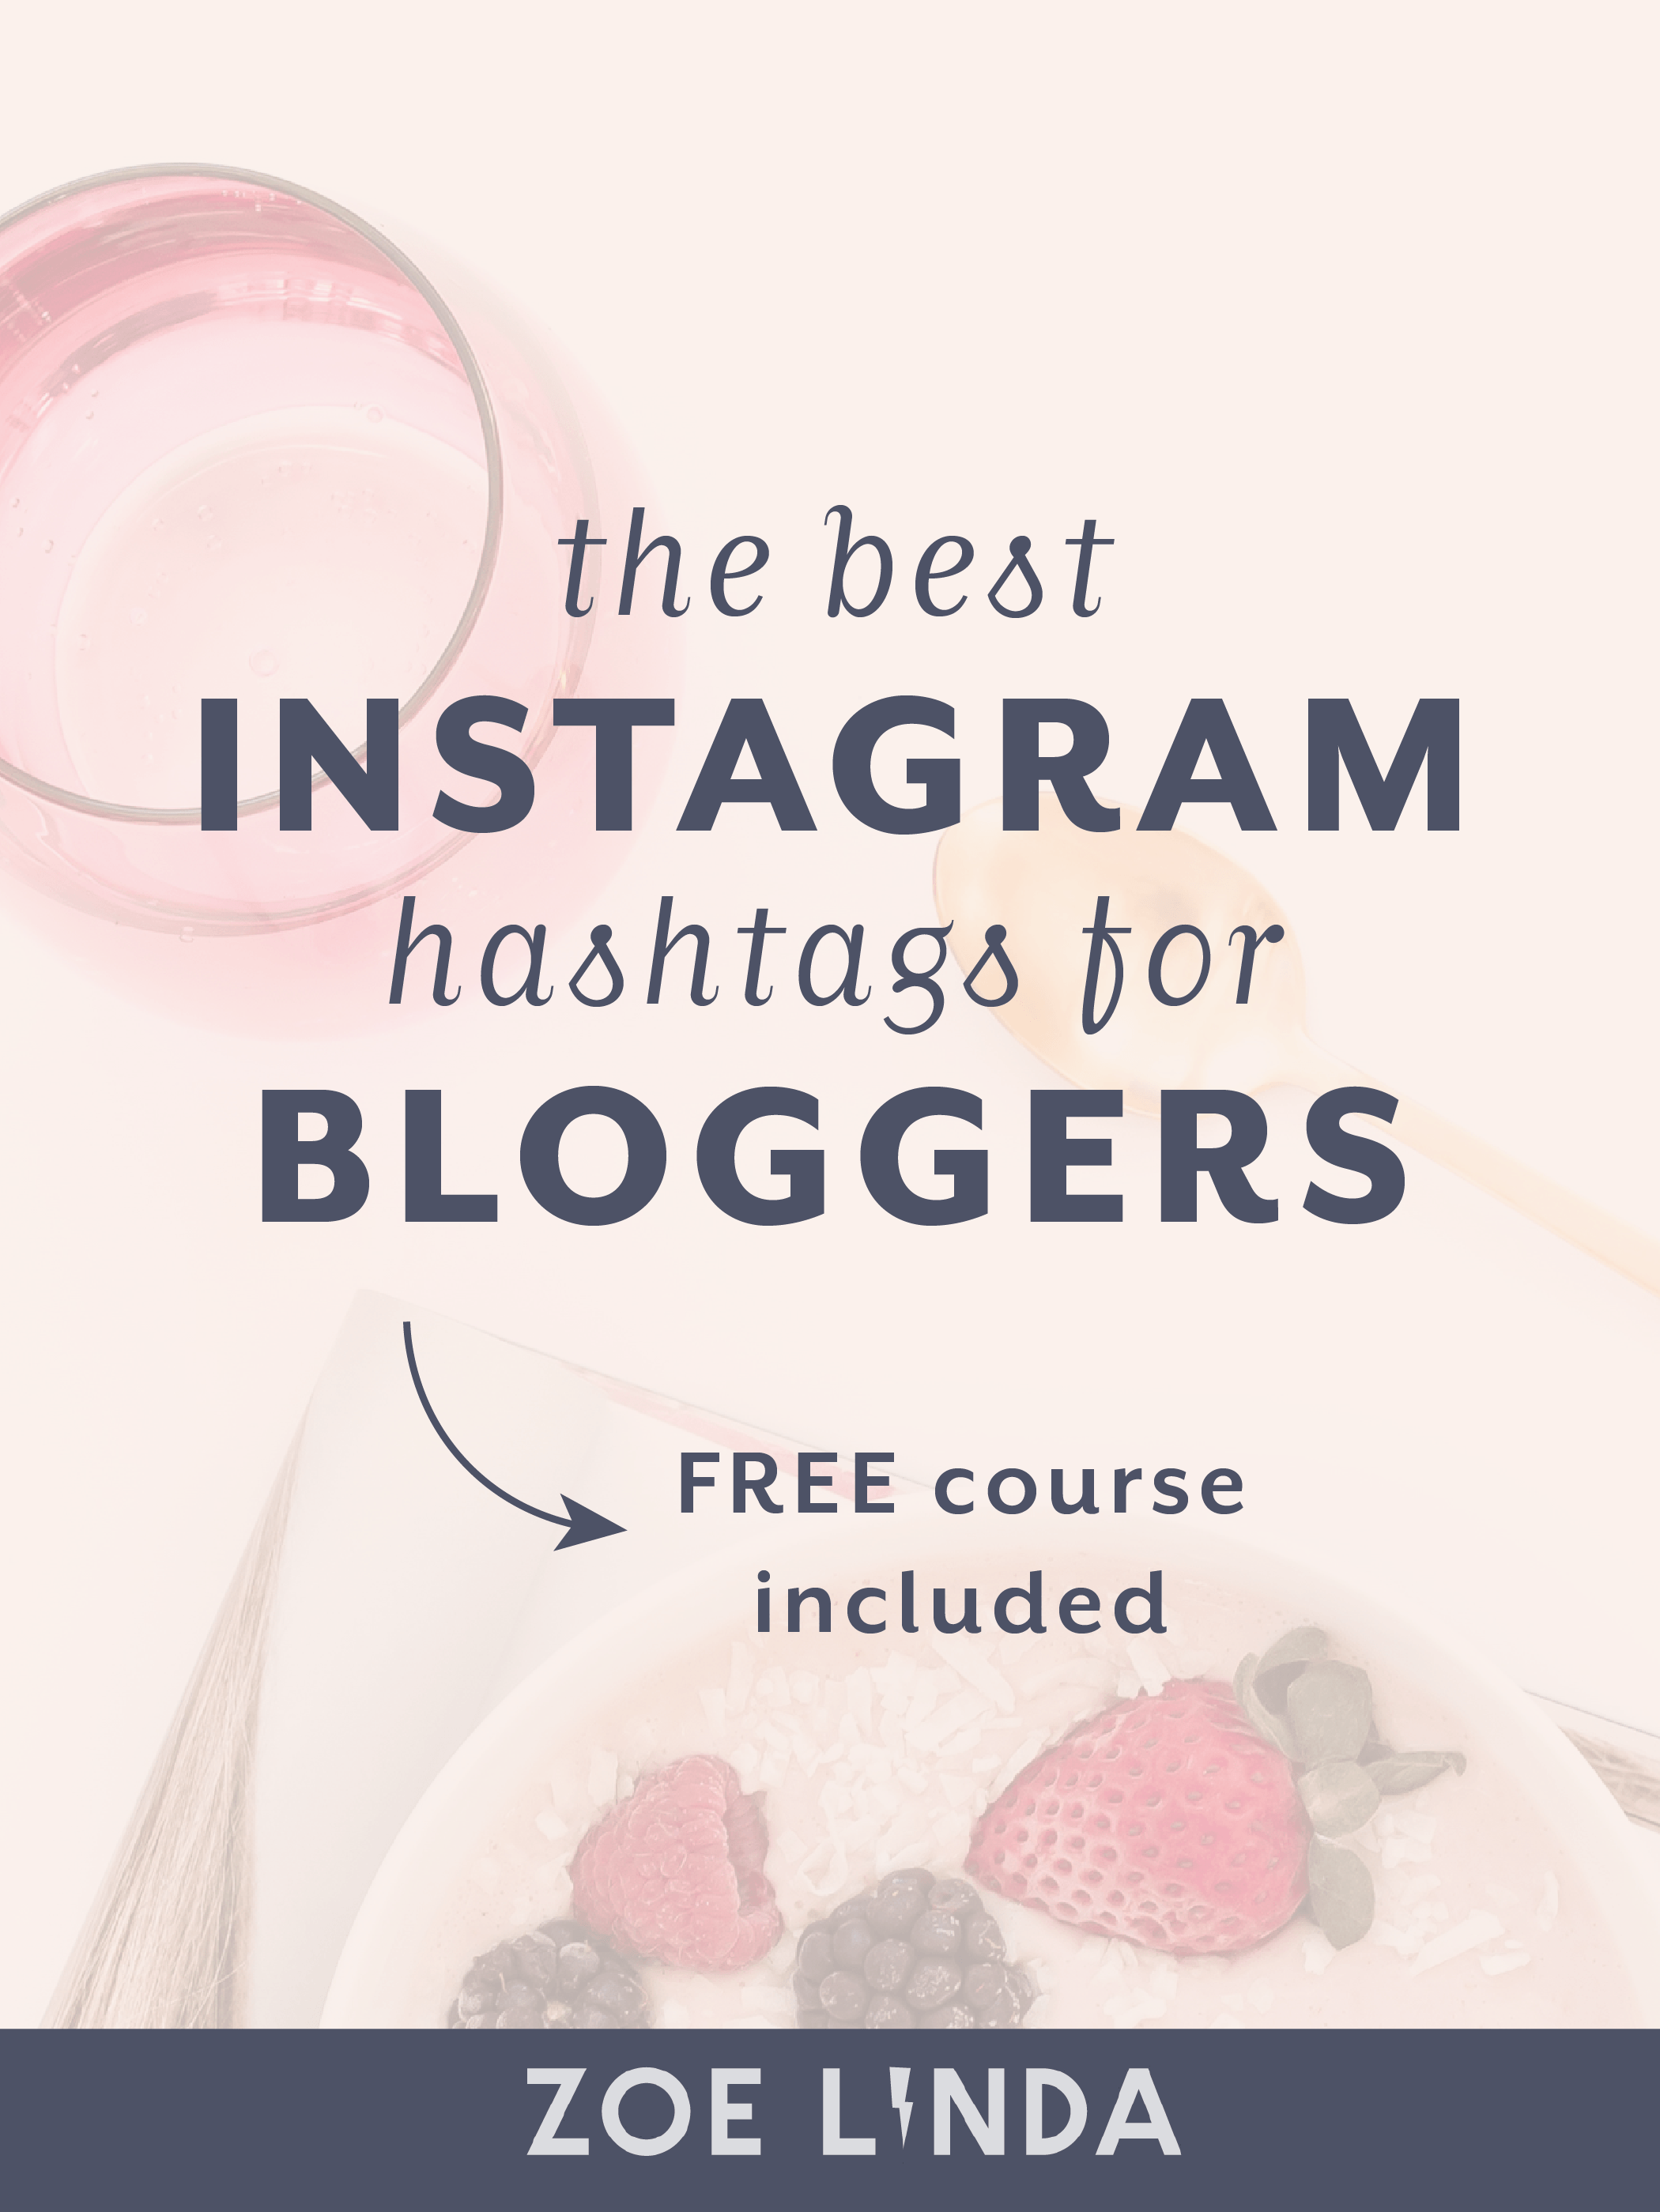 The Best Hashtags on Instagram for Bloggers | Are you struggling to find the best Instagram hashtags for your blog? Click through to find the best hashtags for bloggers - from new bloggers to experienced! This blog post is also helpful for creative business owners and entrepreneurs! Click through for actionable tips and advice - and don't forget to sign up to my free 5 day Instagram strategy course! #instagram #instagrammarketing #instagramstrategy